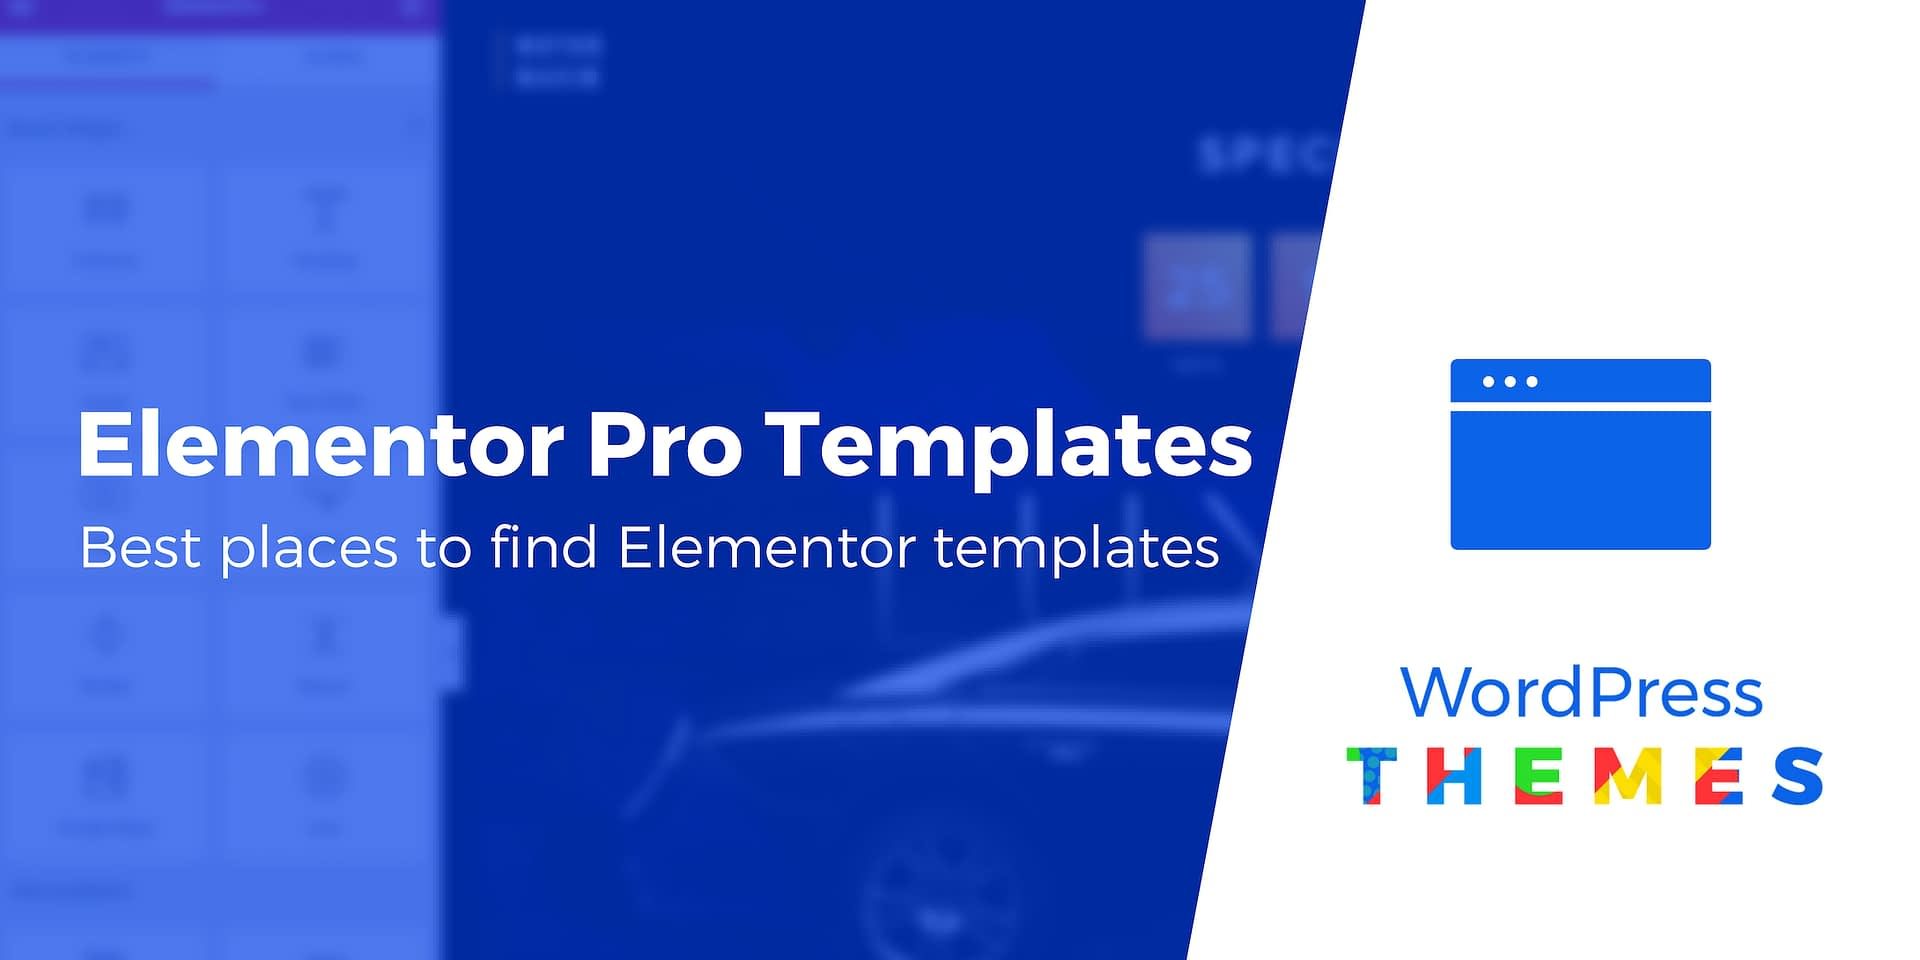 Elementor Pro Templates: Where to Find Them + 10 of the Best Ones